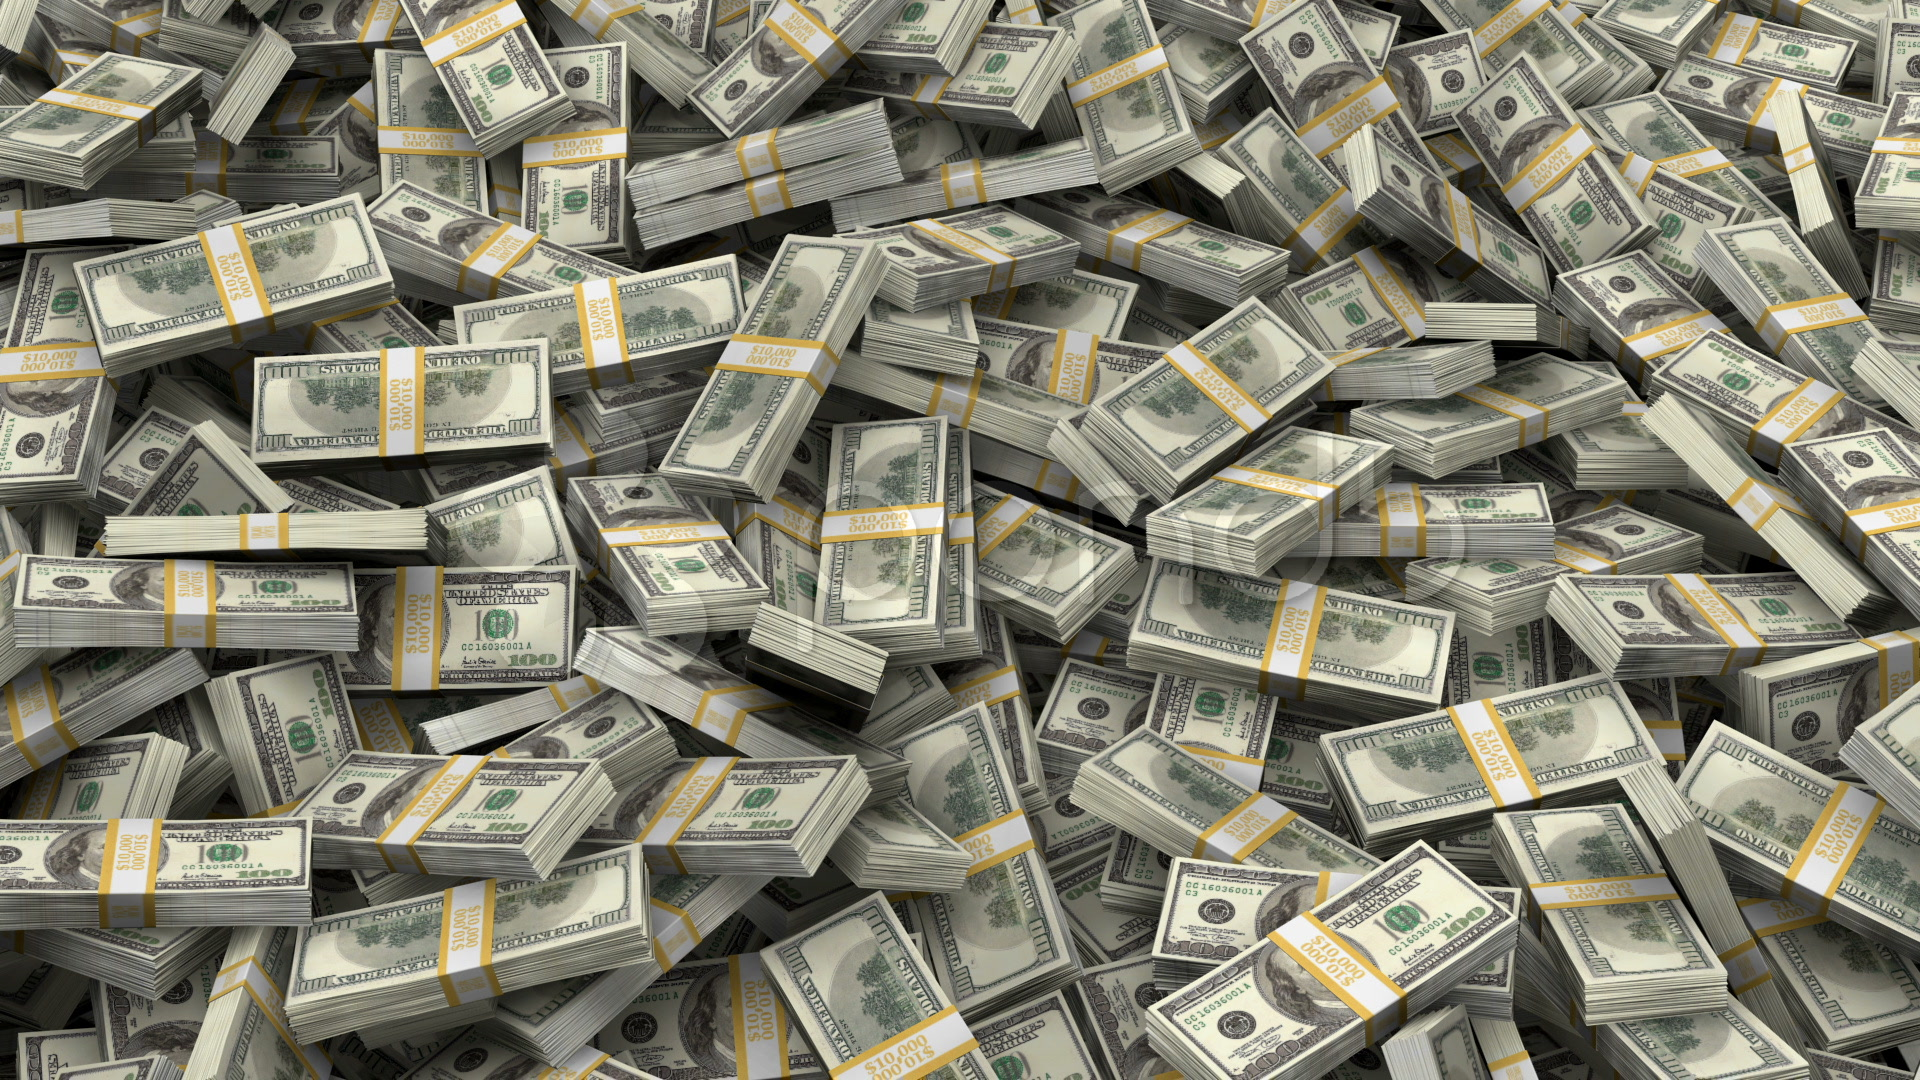 Money 100 dollar wallpaper wallpapersafari - Money hd wallpapers 1080p ...